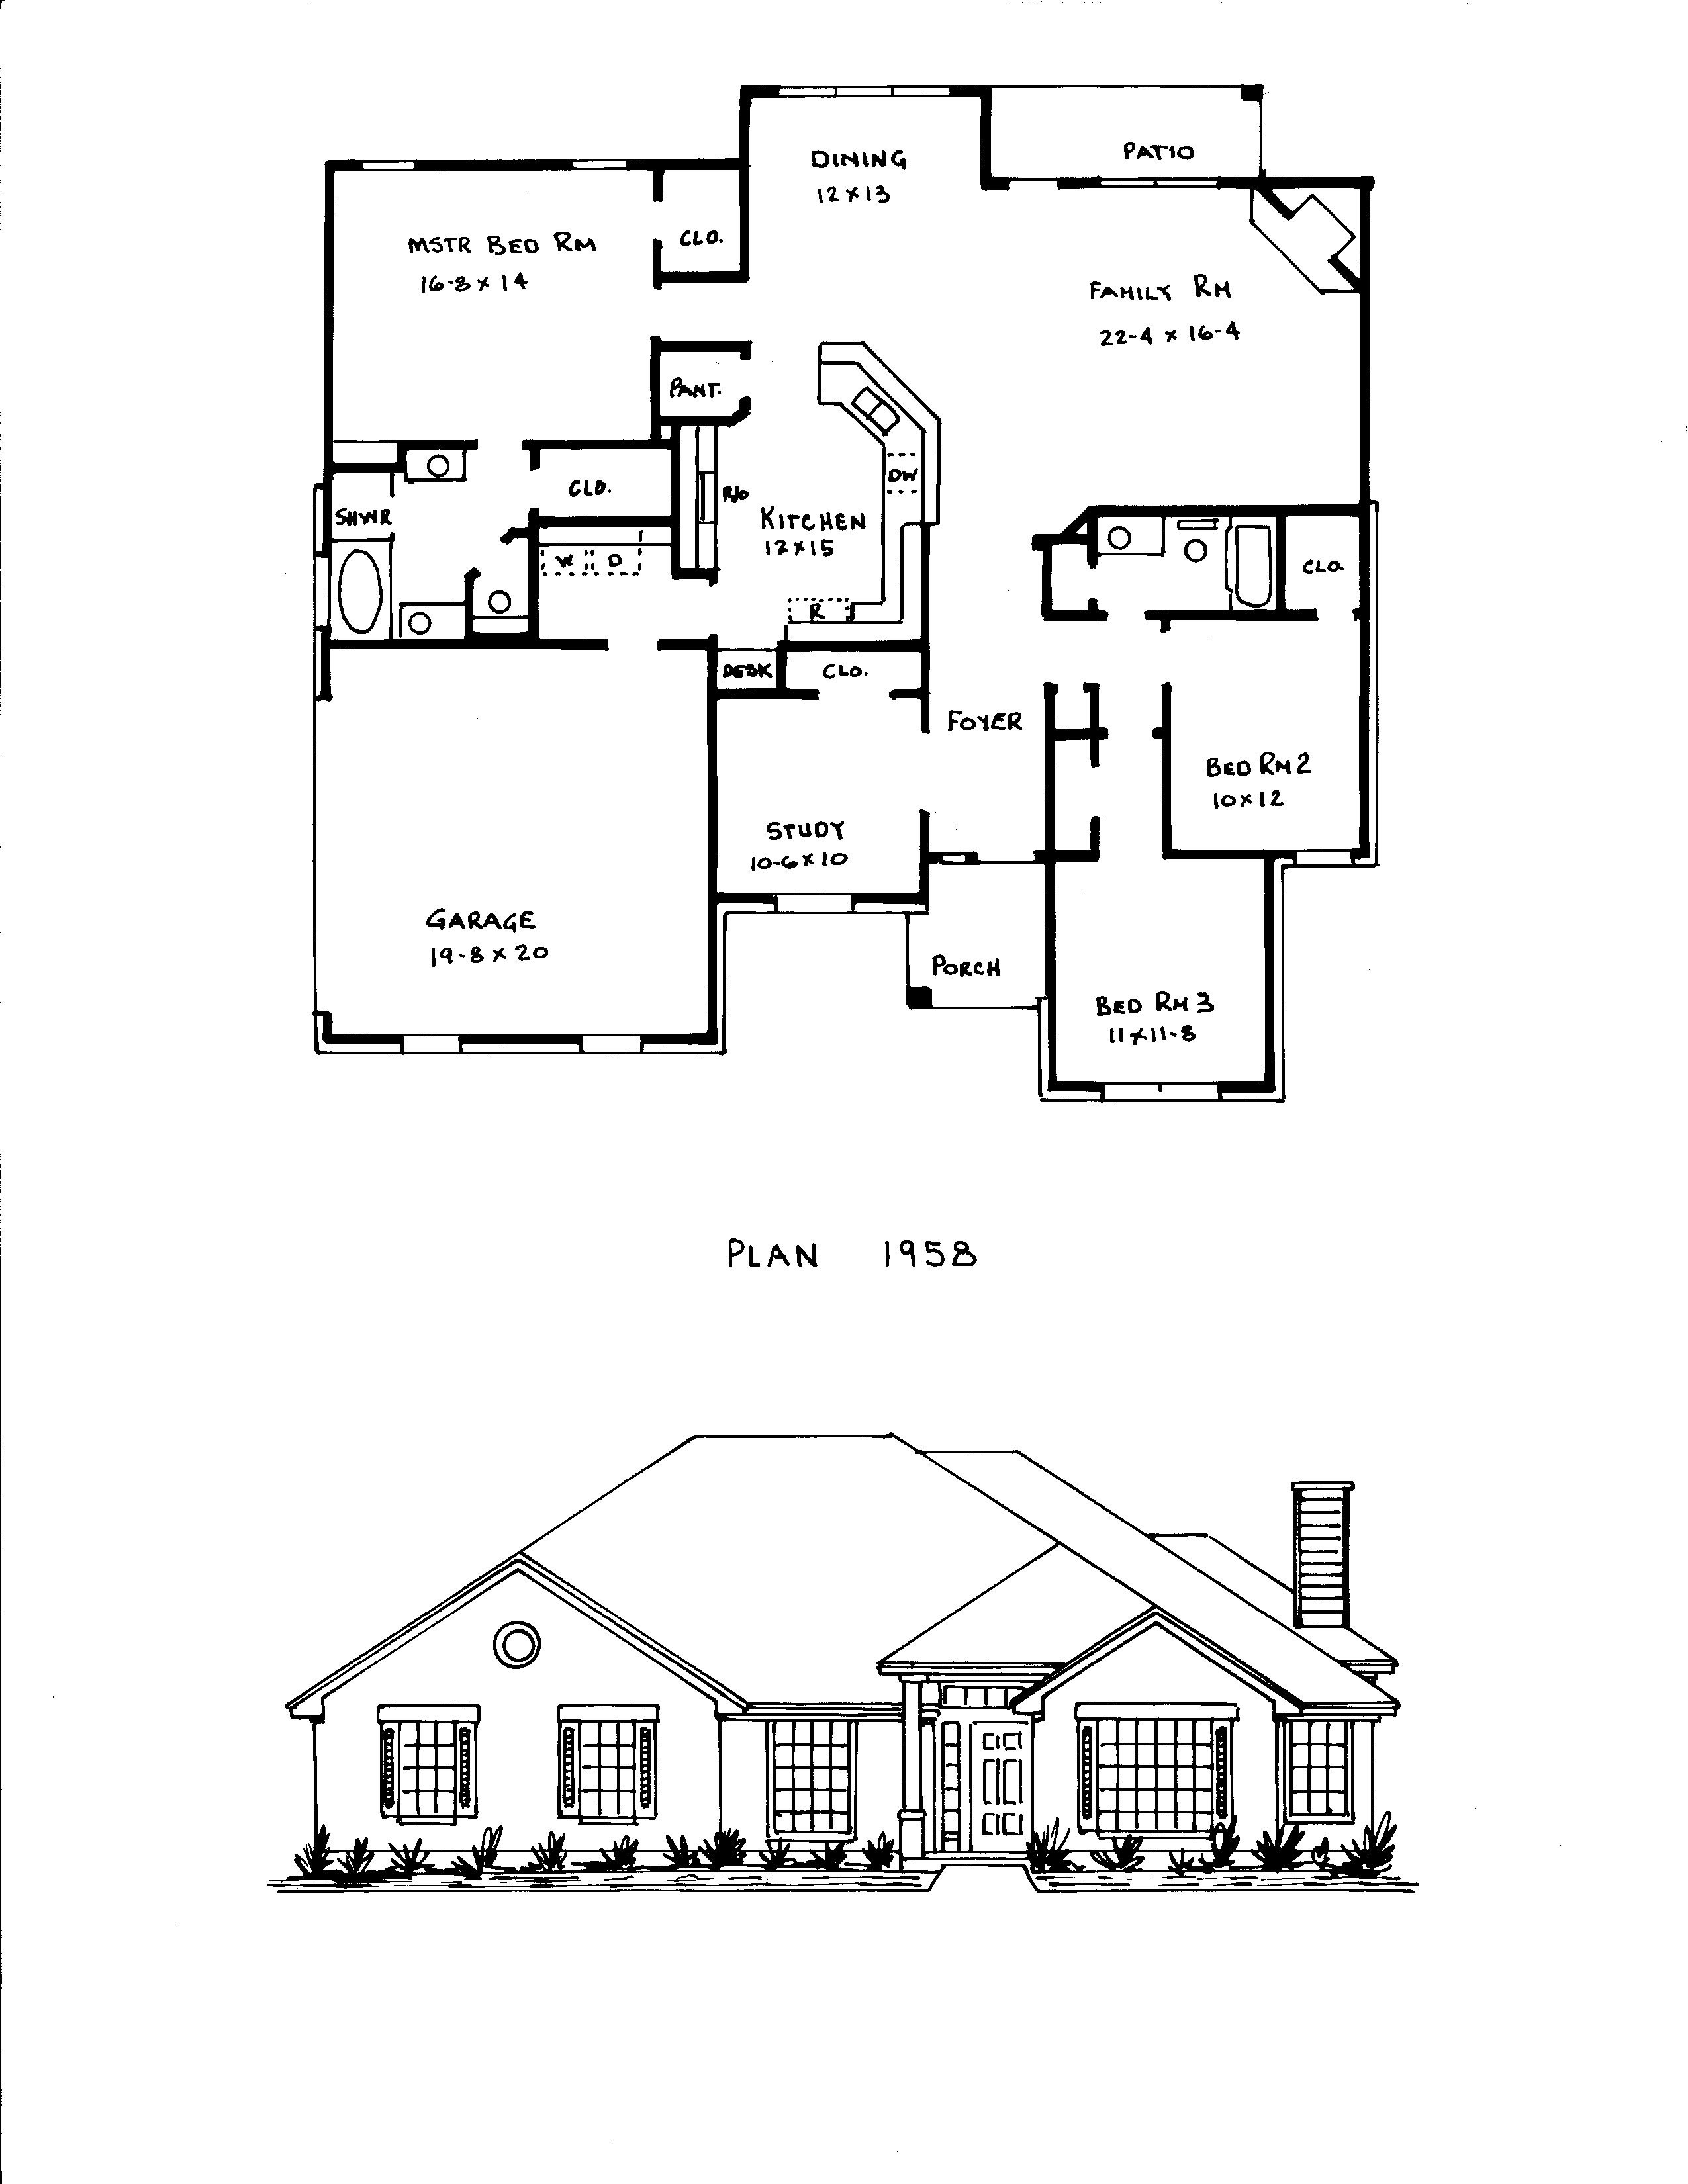 inside pictures of plans available